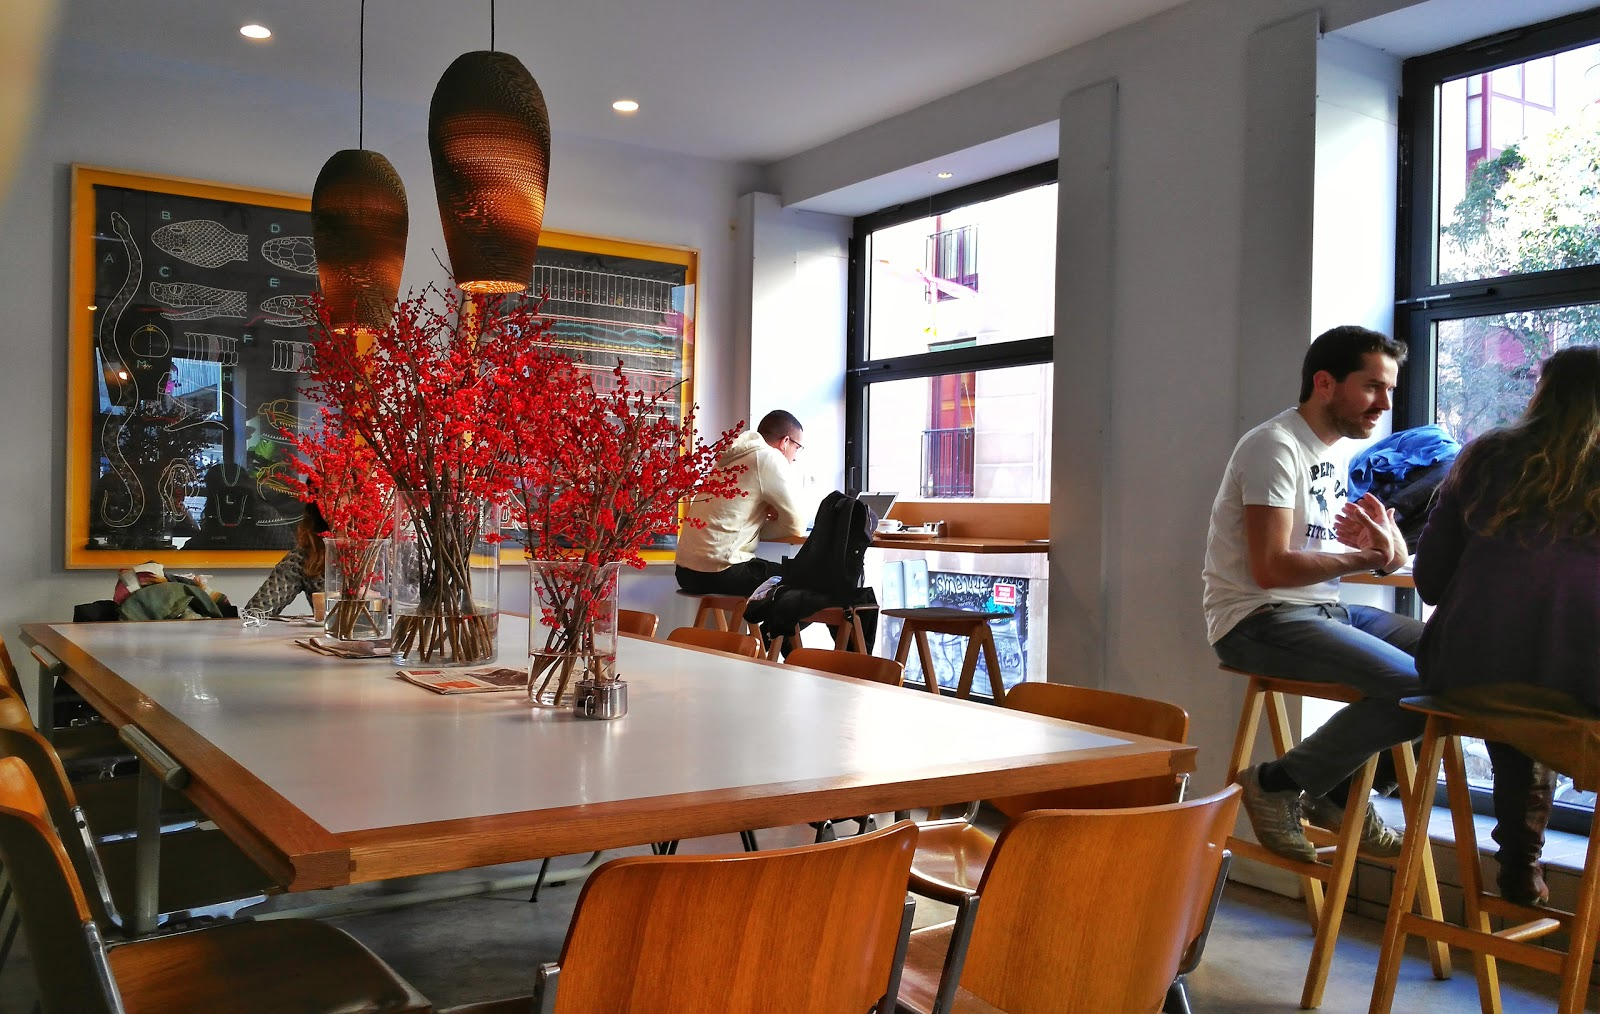 Café Federal: A Work-Friendly Place in Madrid